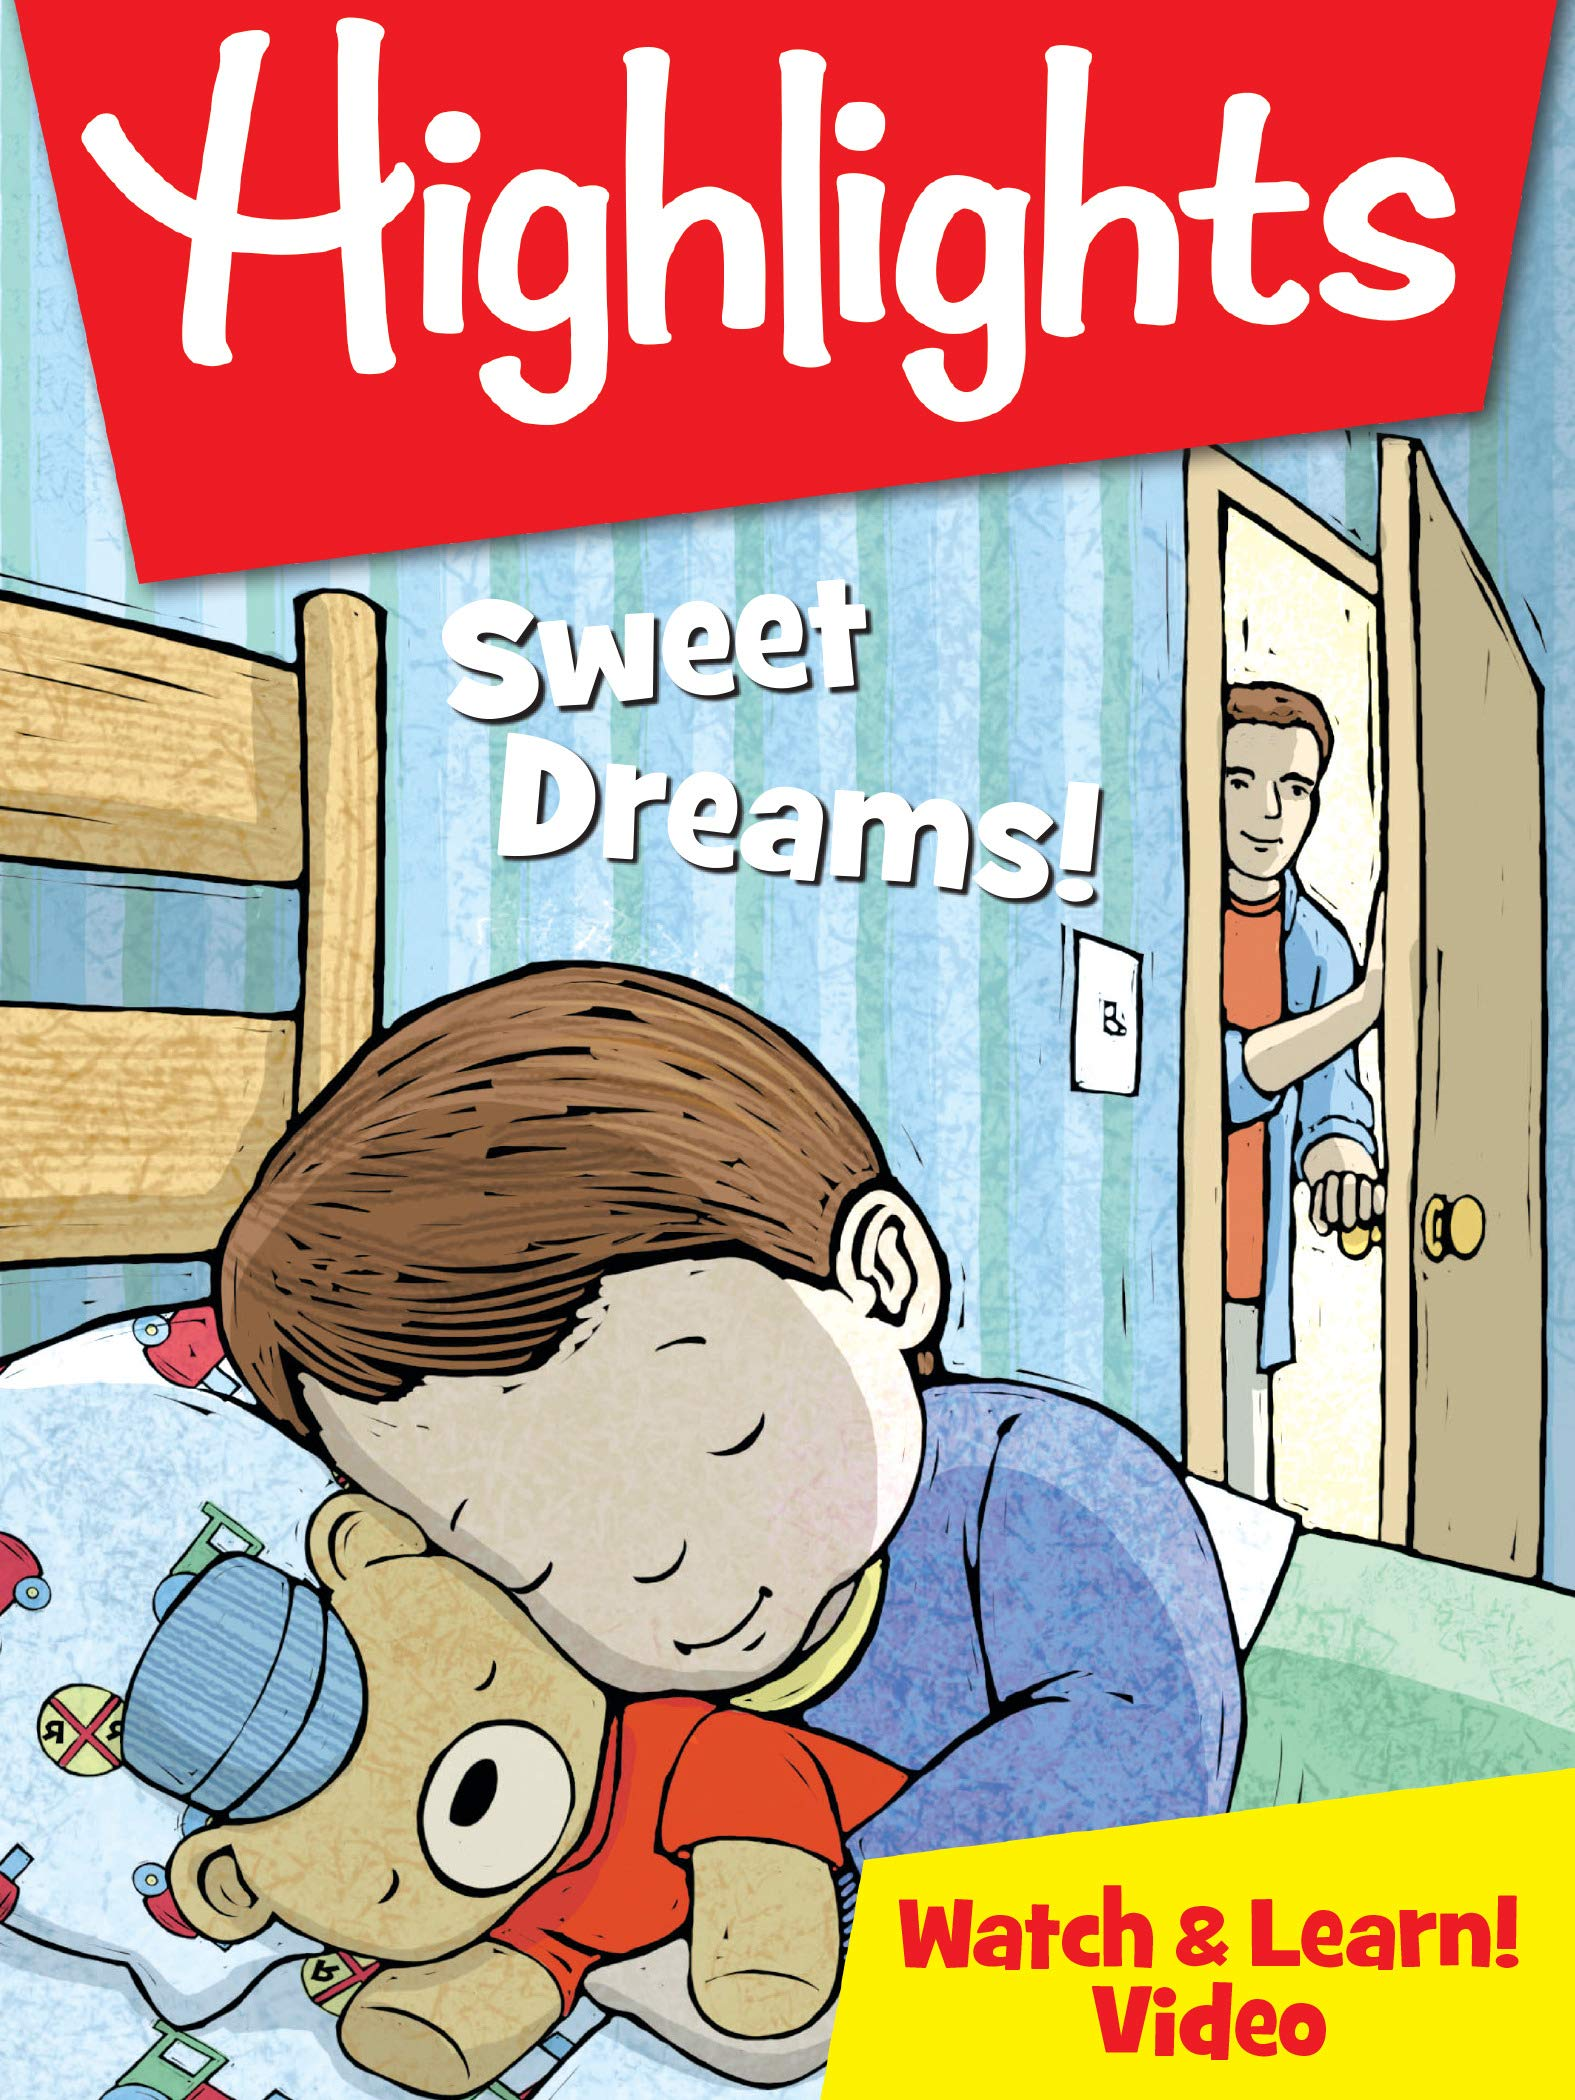 Highlights Watch & Learn!: Sweet Dreams! on Amazon Prime Video UK